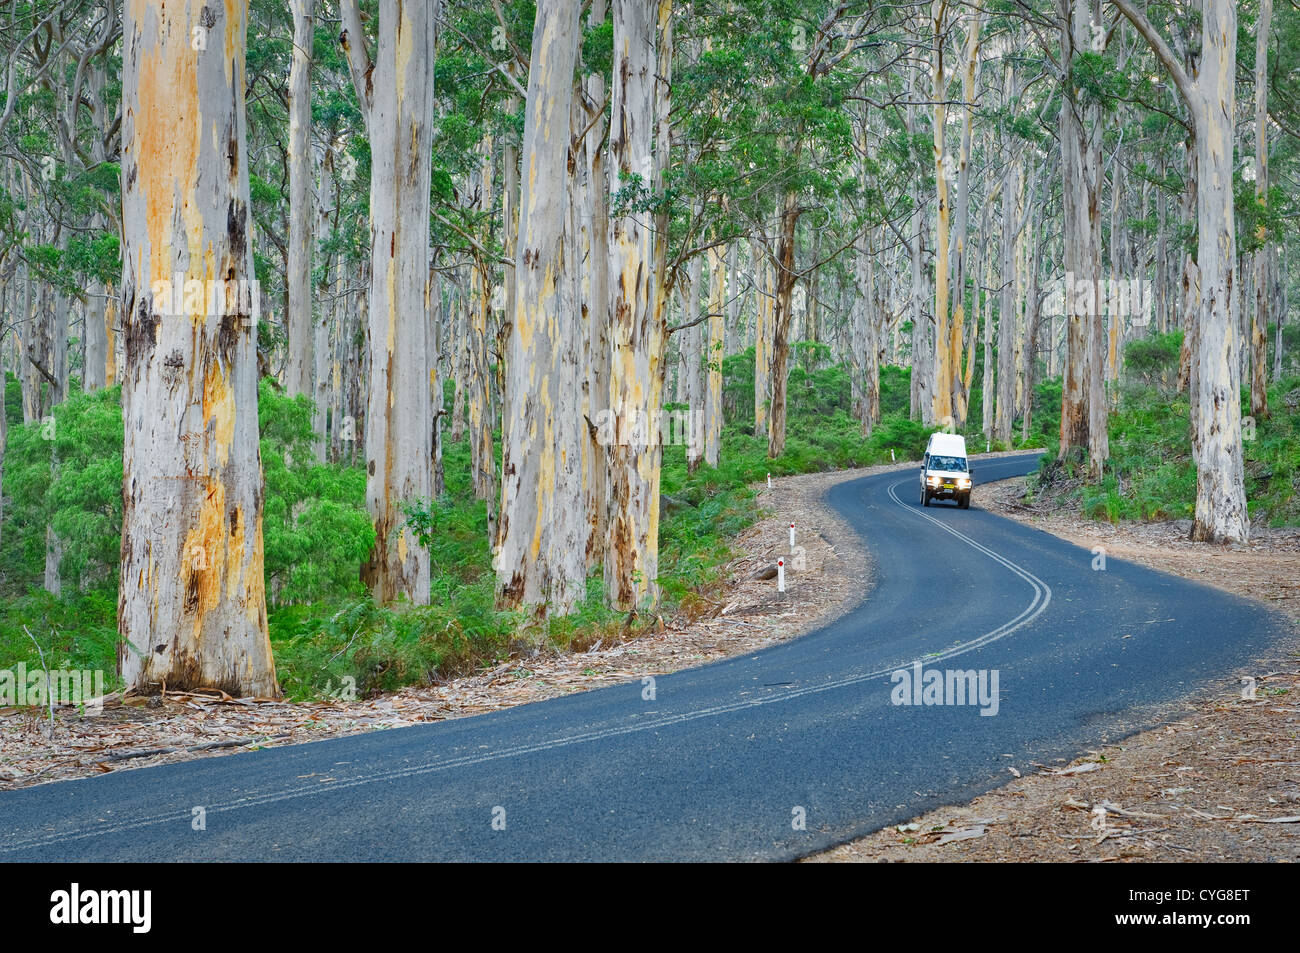 Road through the eucalypt forest of Boranup. - Stock Image